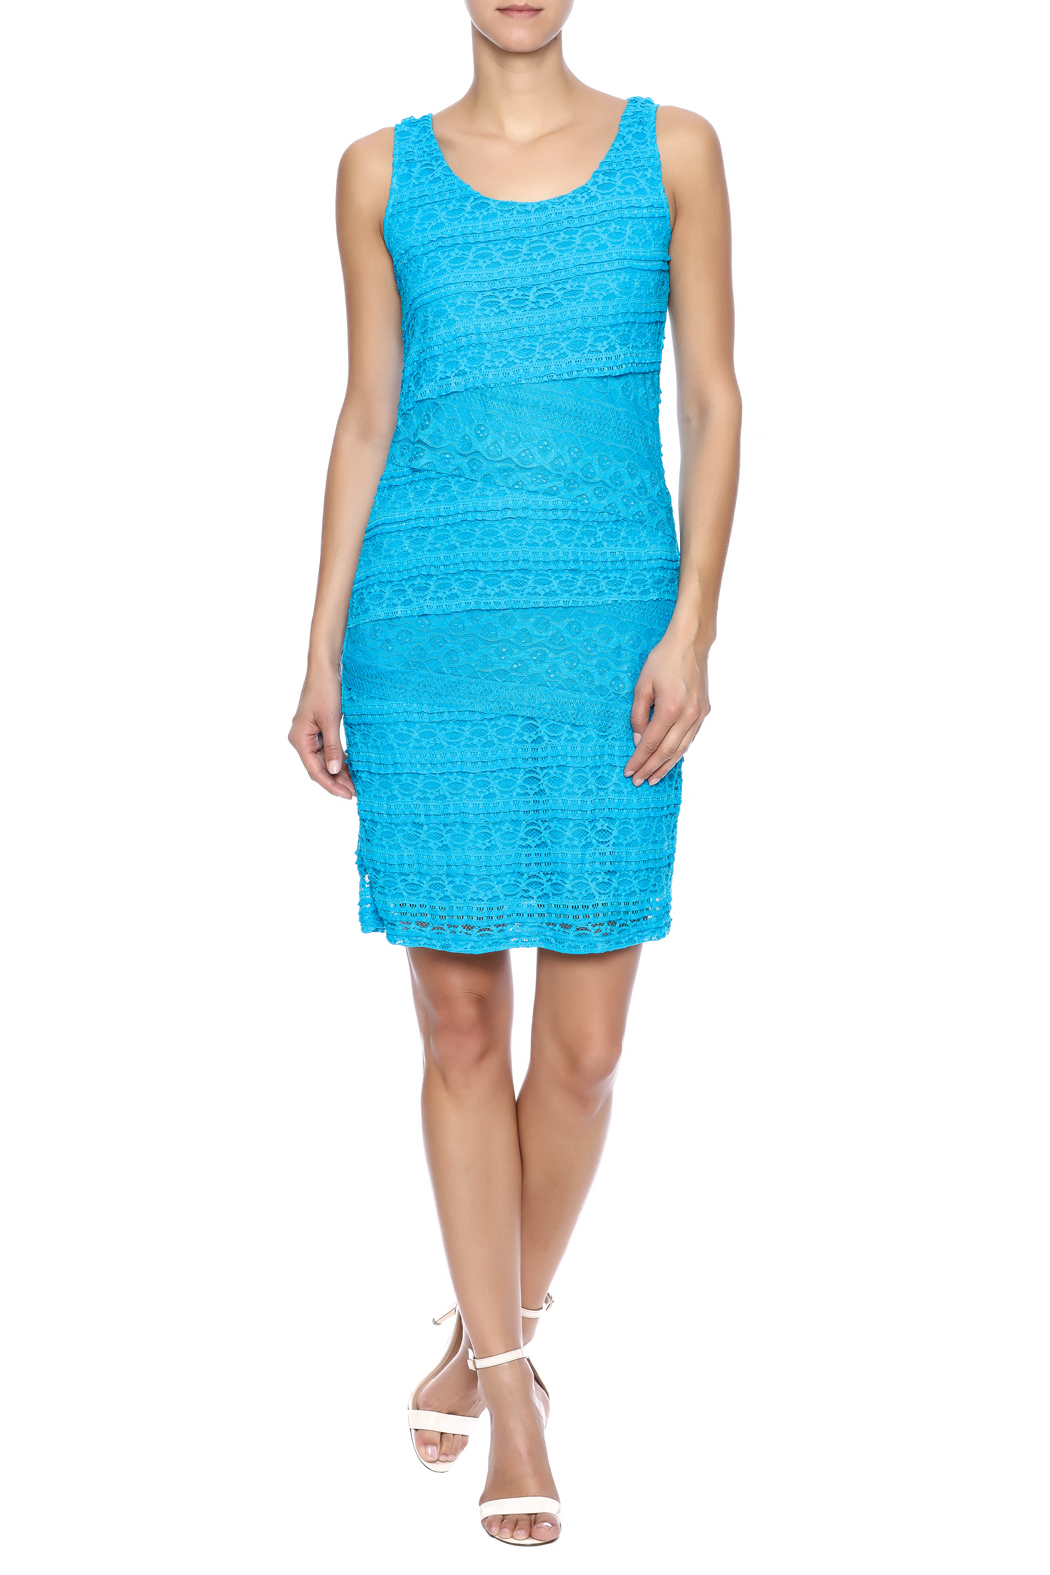 Michael Edwards Turquoise Lace Dress - Front Full Image